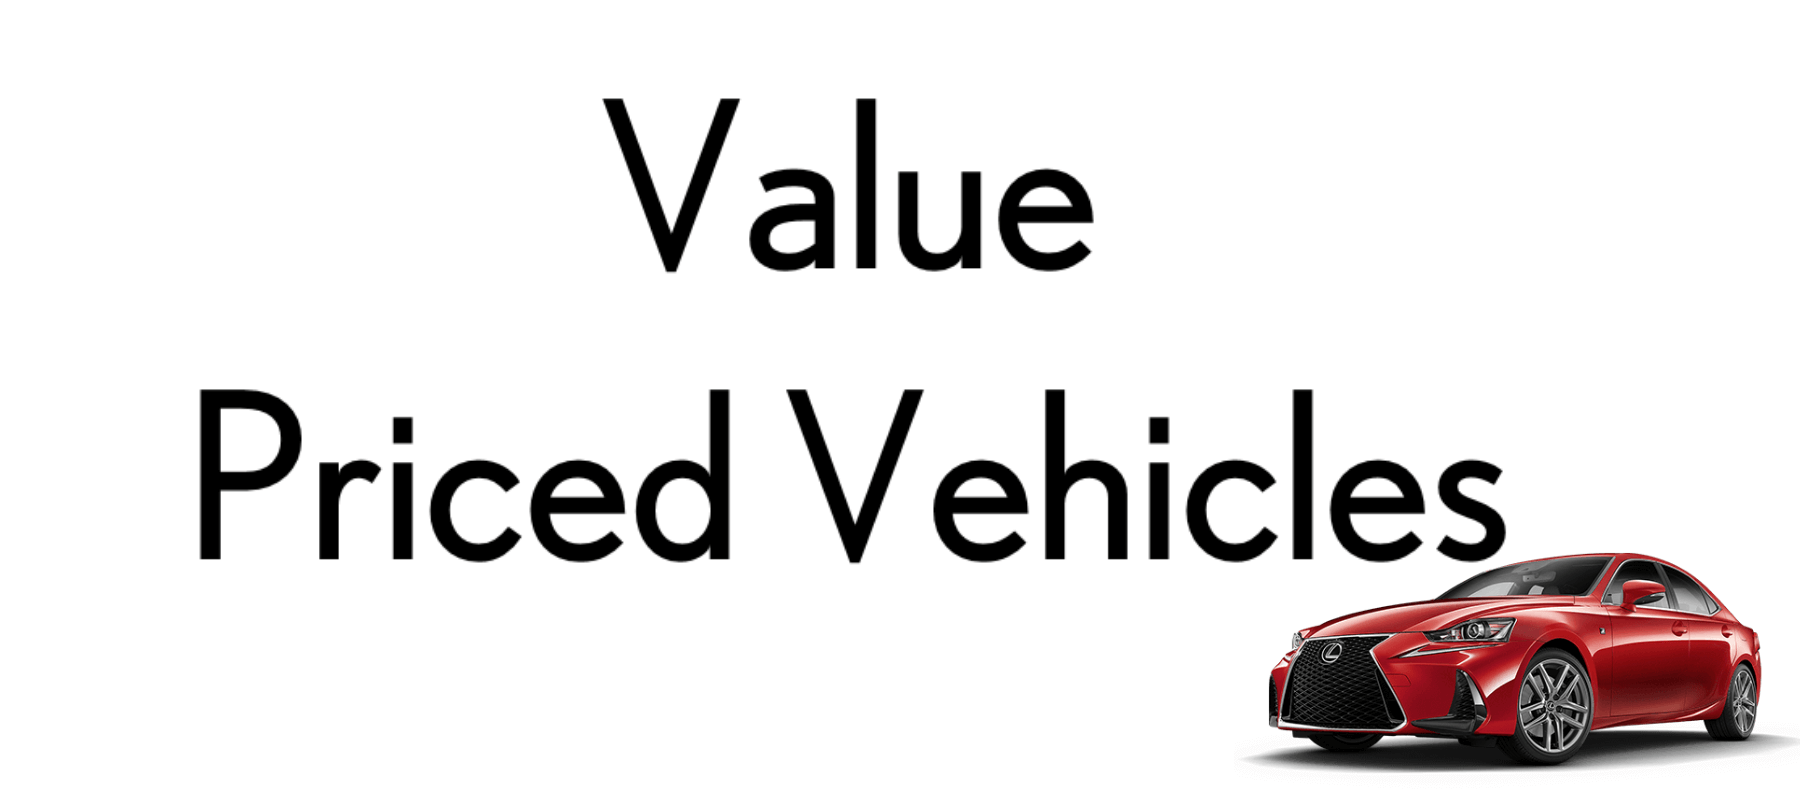 Value Priced Vehicles for Sale